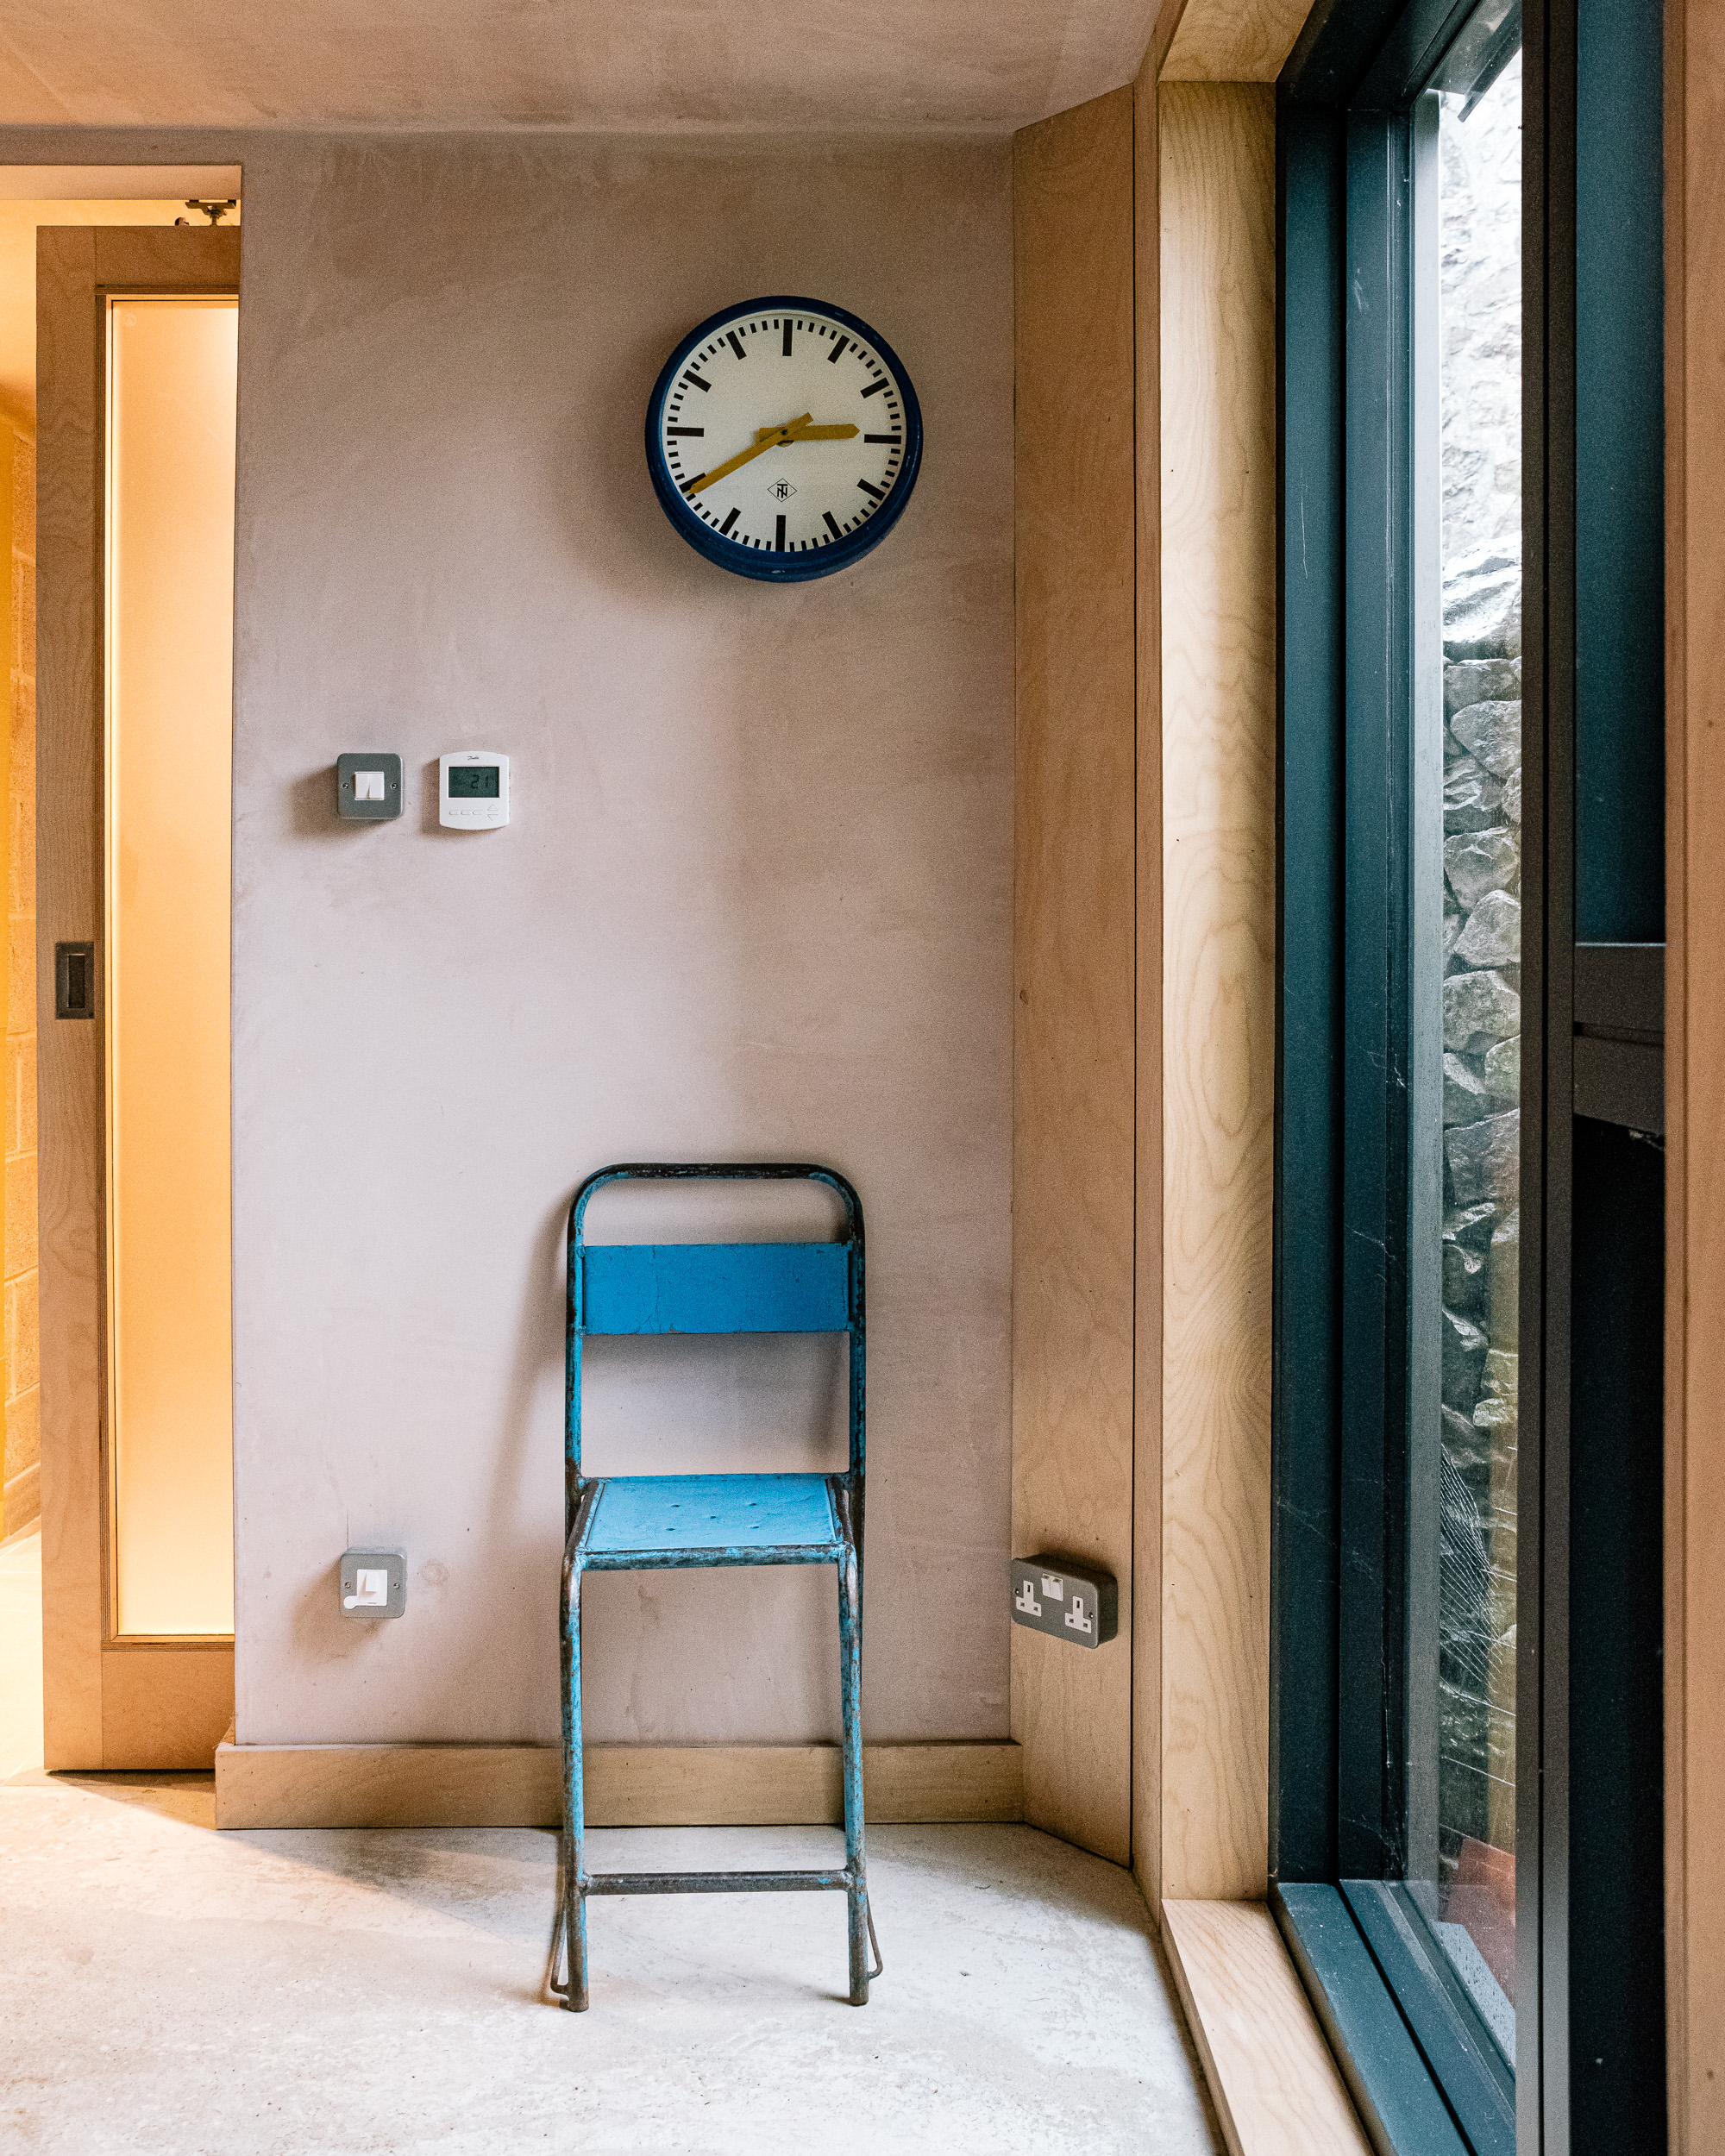 Utility room chair